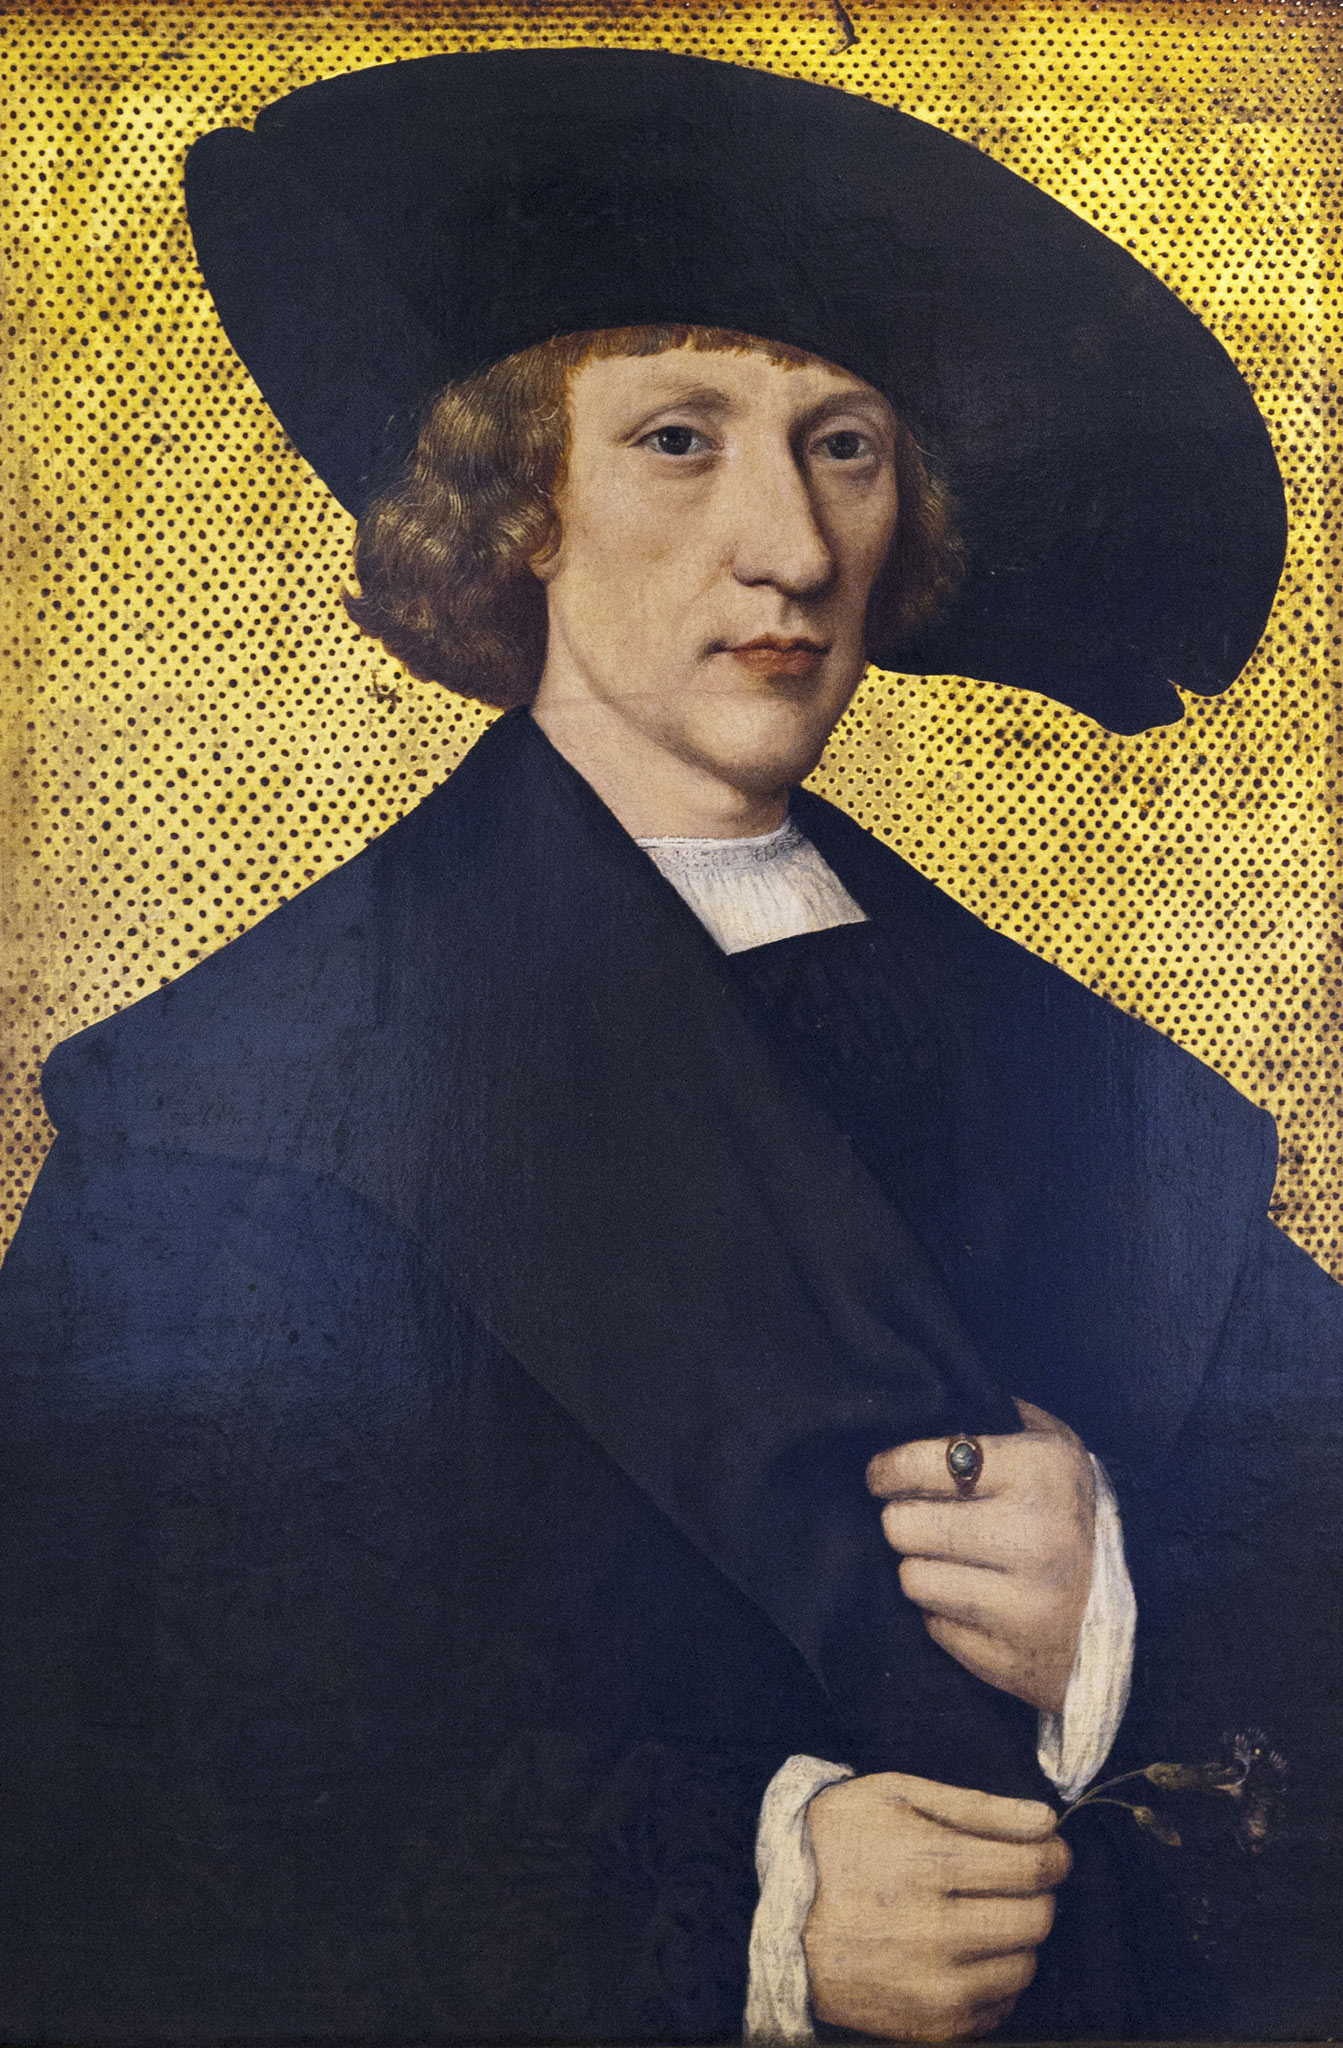 Šternberg Palace, Prague. Portrait of a Man with a Carnation - 1525